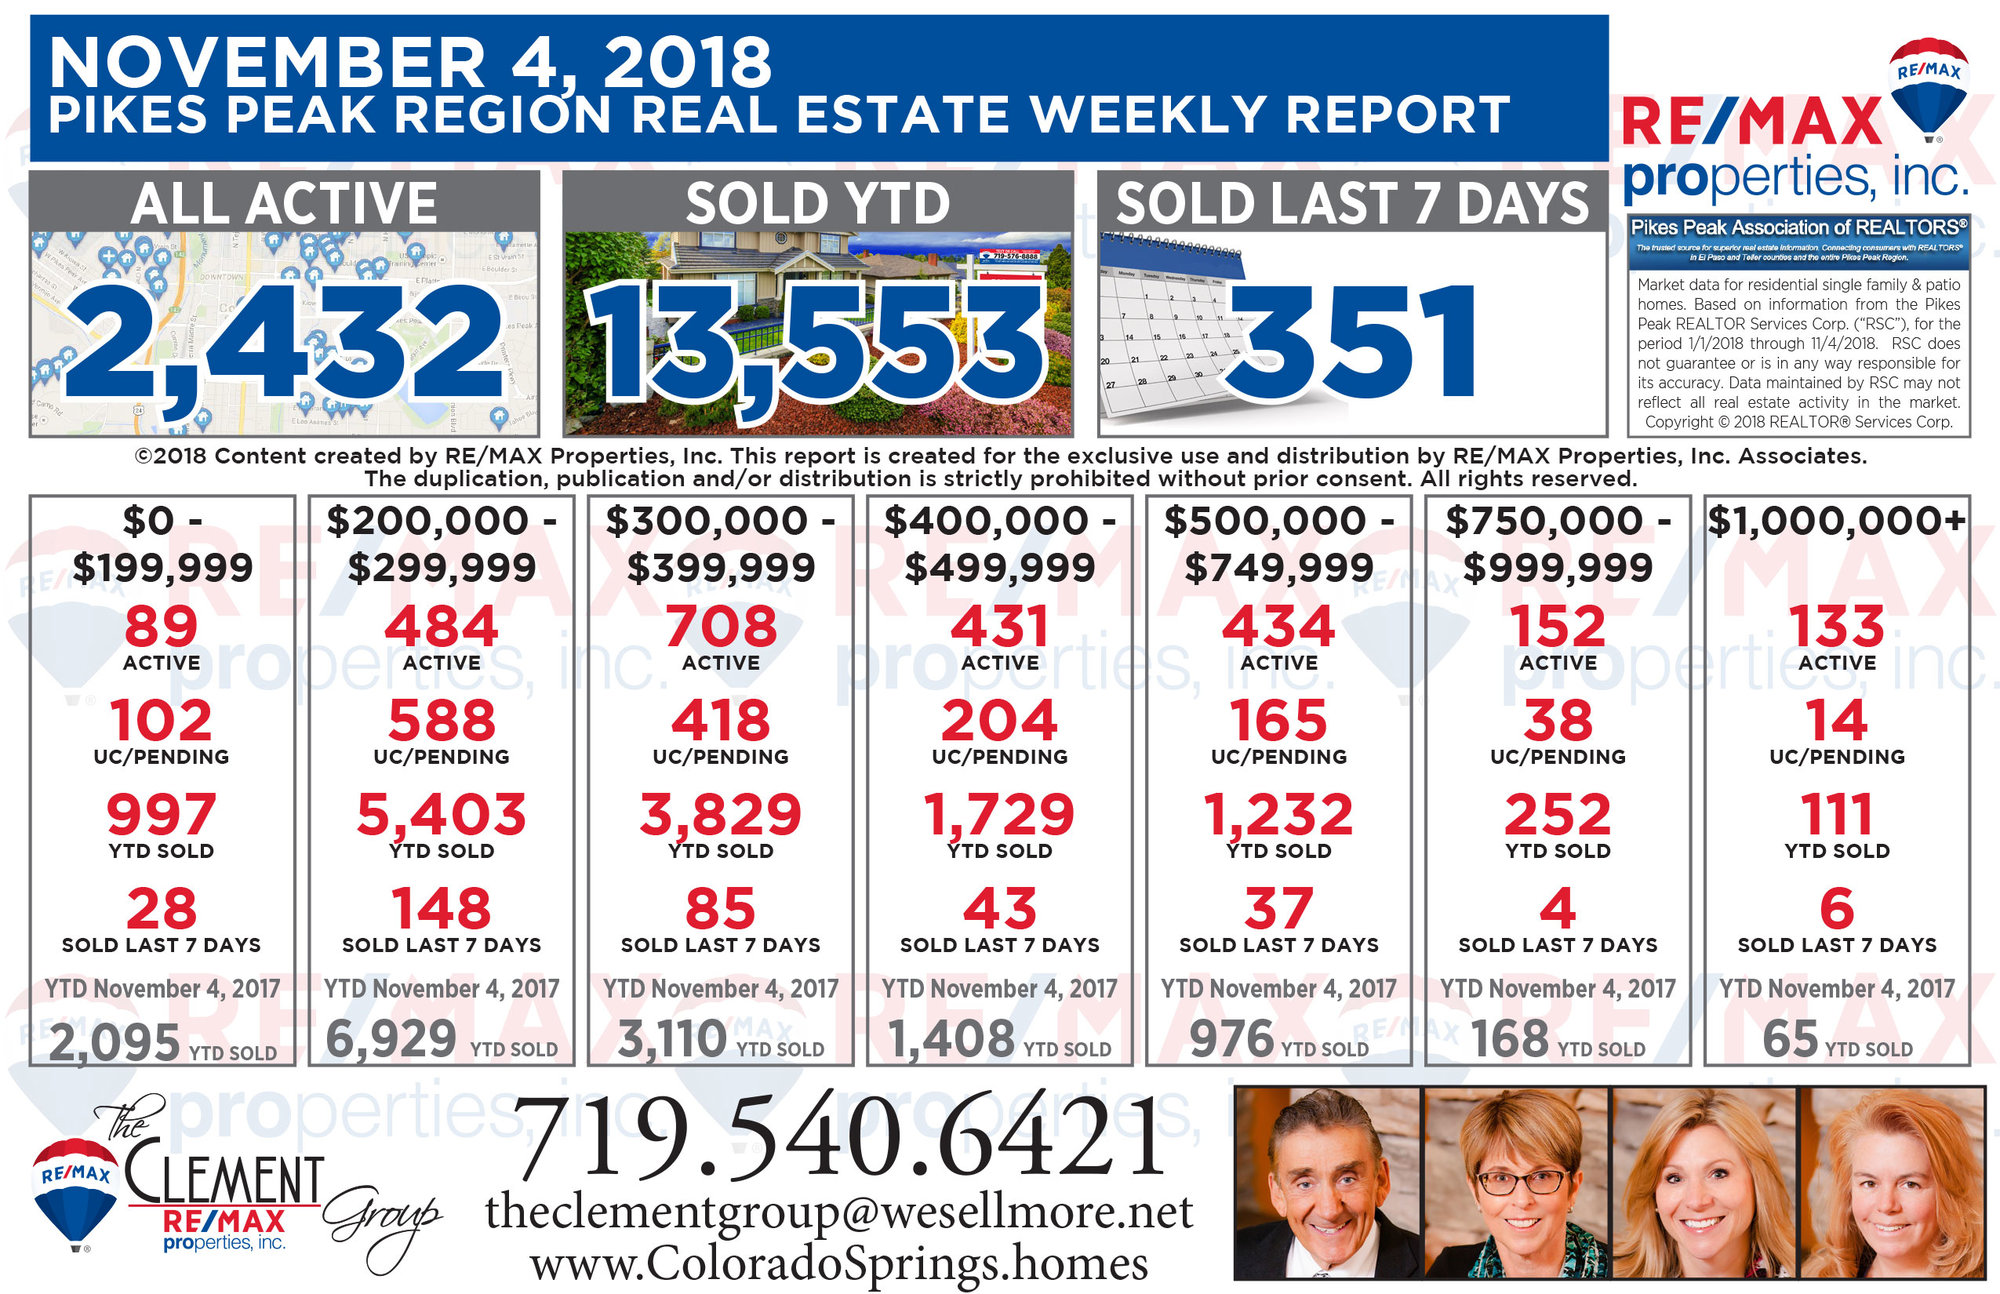 Colorado Springs Real Estate Market Weekly Update - November 4, 2018 - The Joe Clement